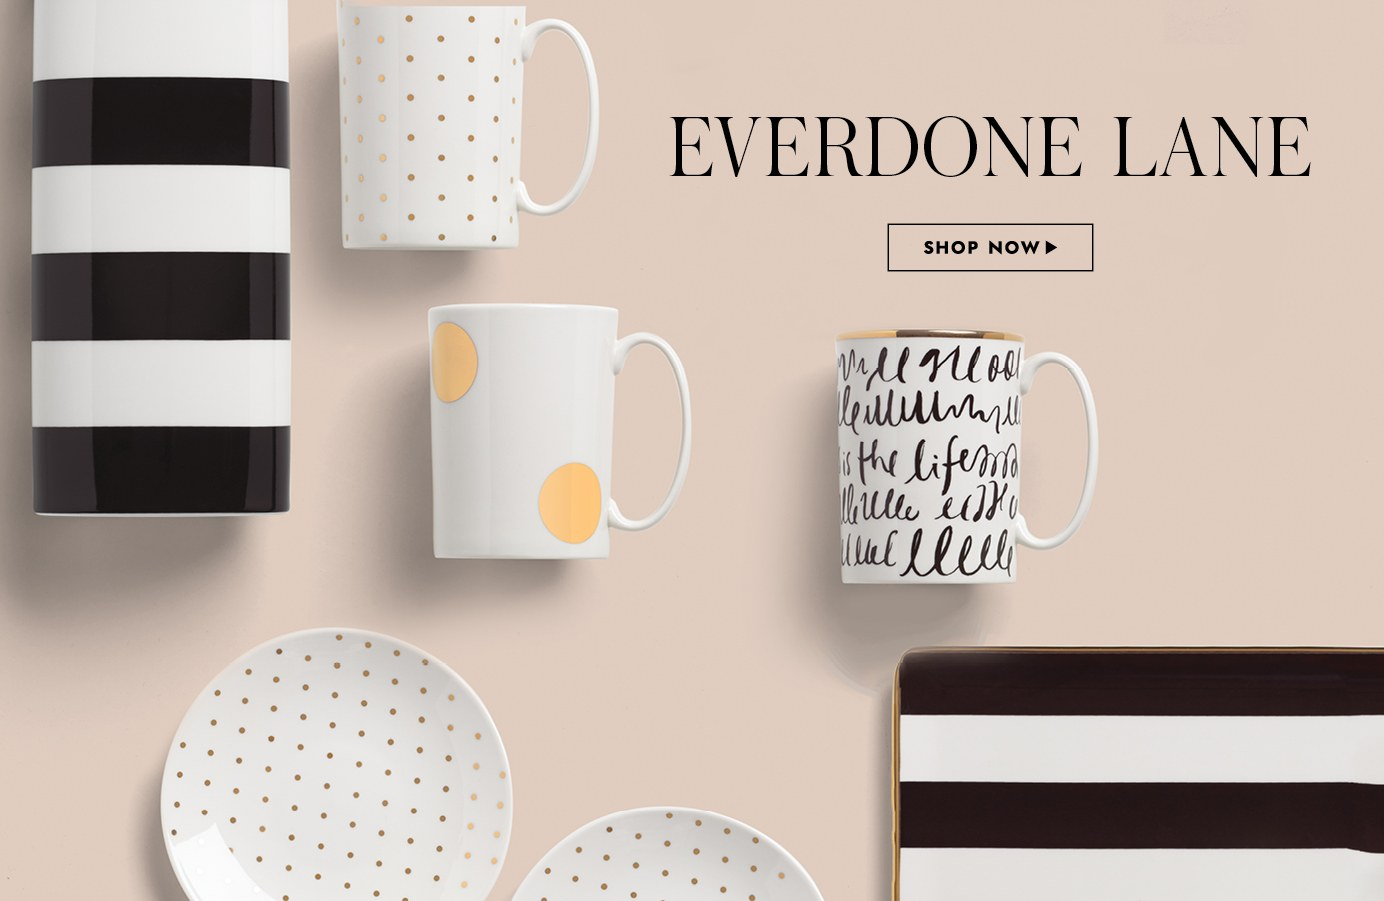 Everdone Lane Collection